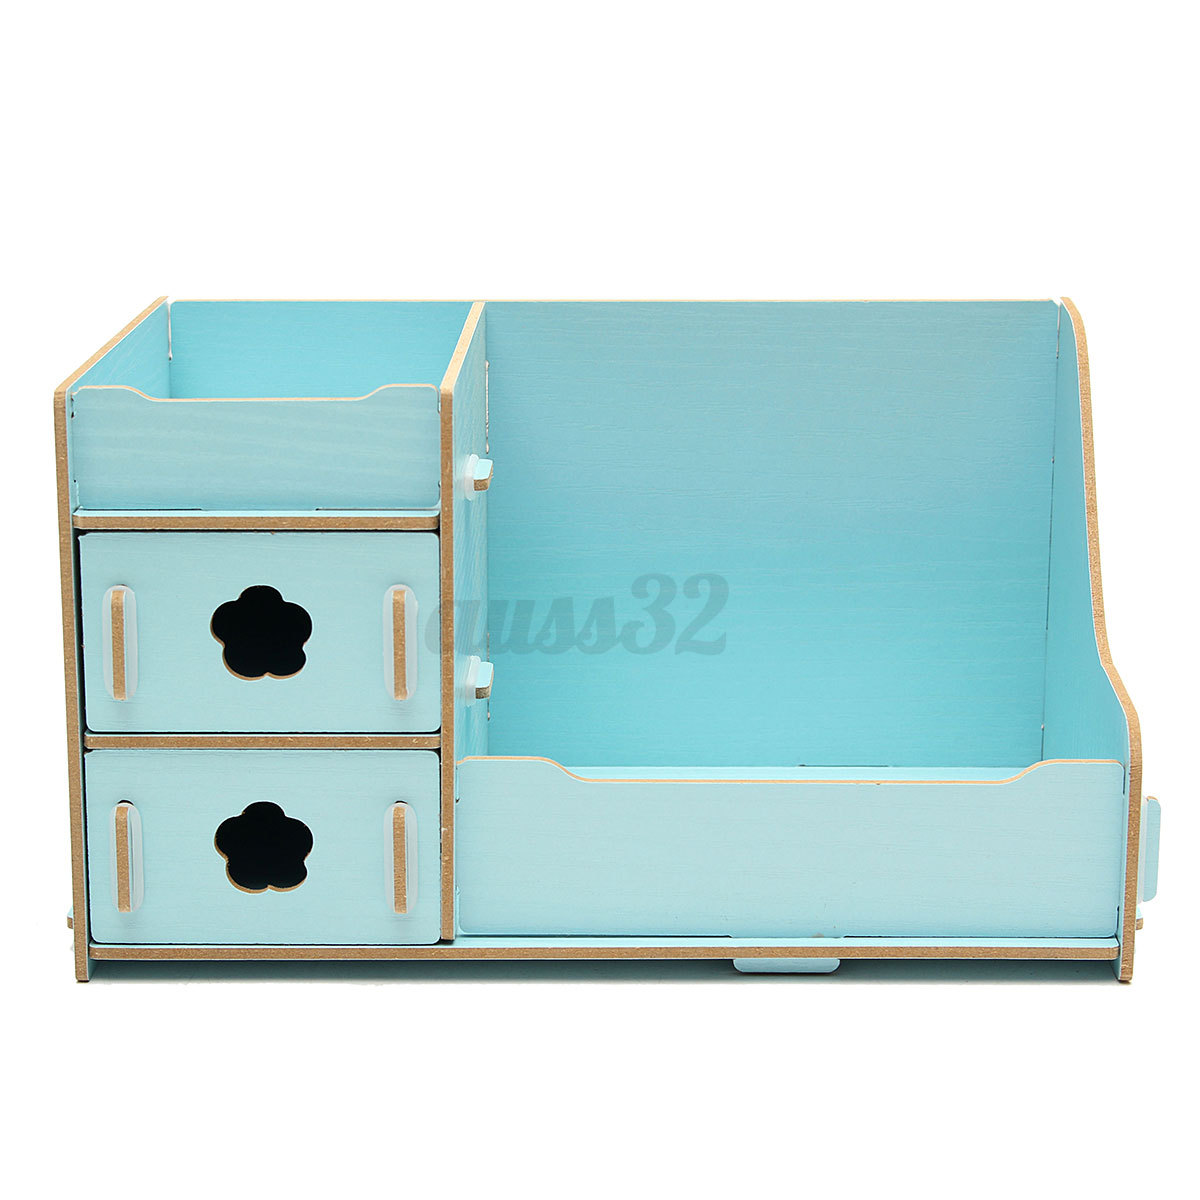 Cute Desktop Organizers Wooden Storage Box Cosmetics Multifunctional Diy Makeup